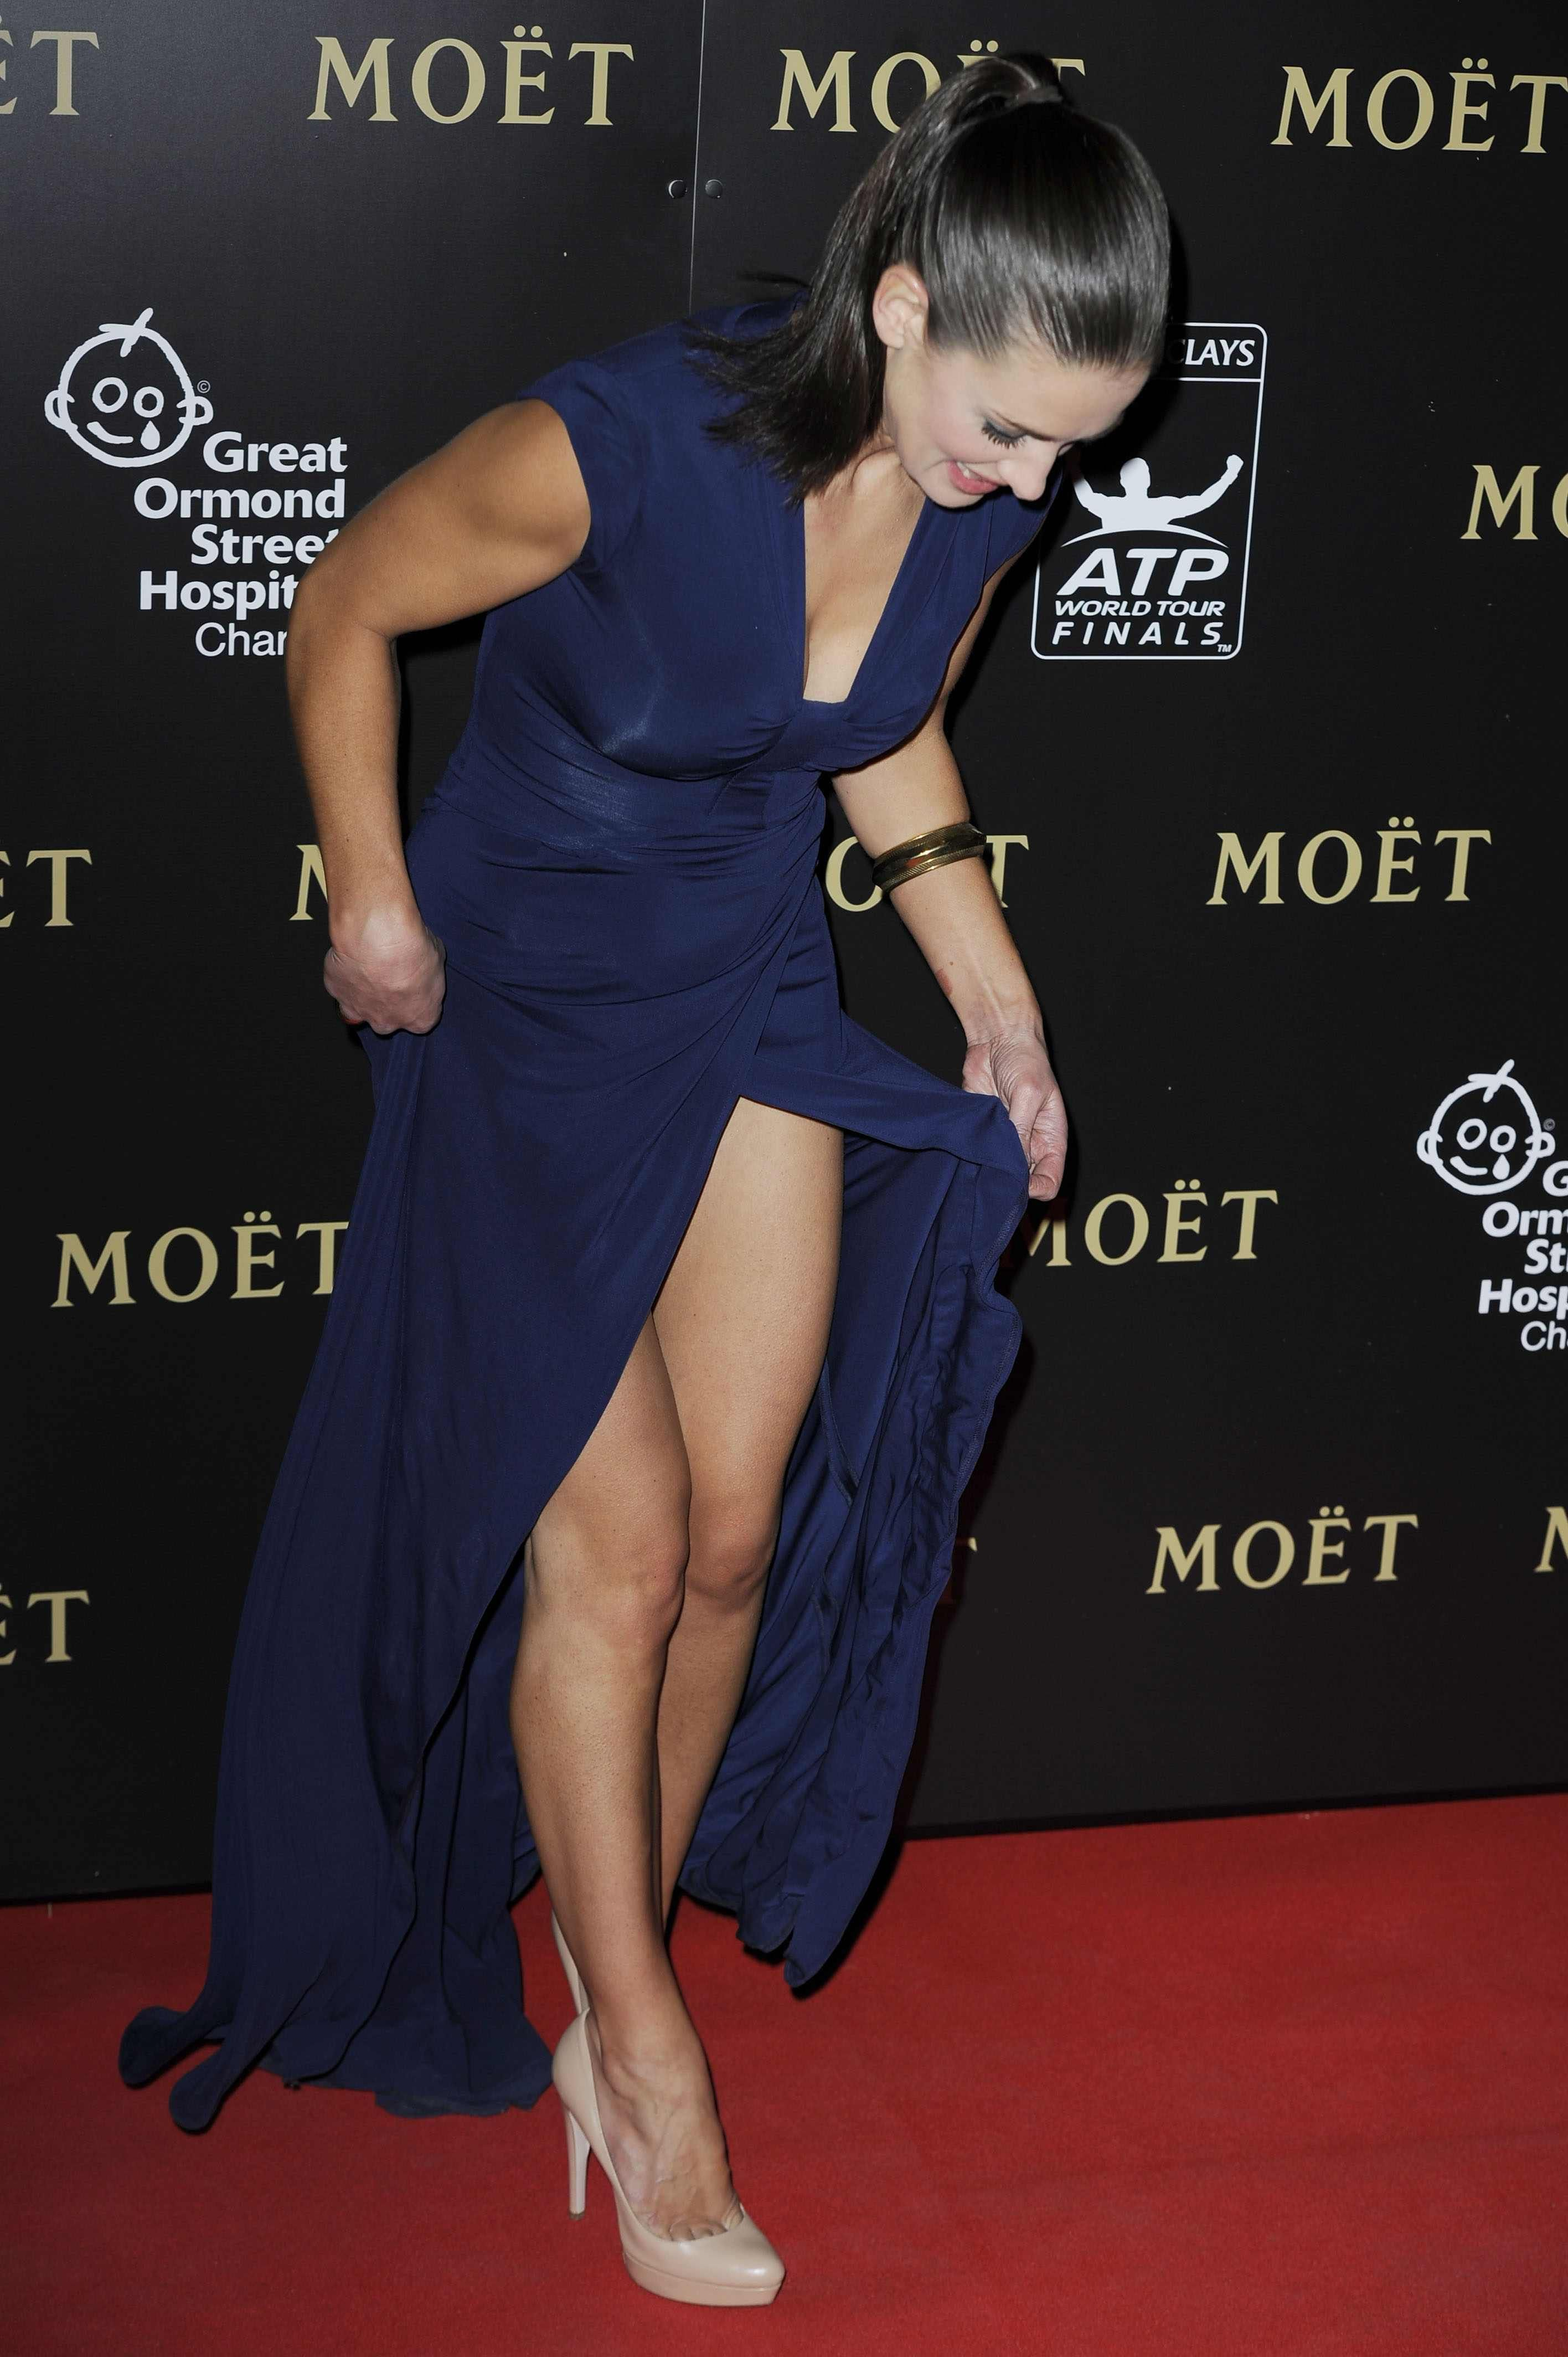 Chief Kirsty gallacher, Formal dresses long, Formal dresses